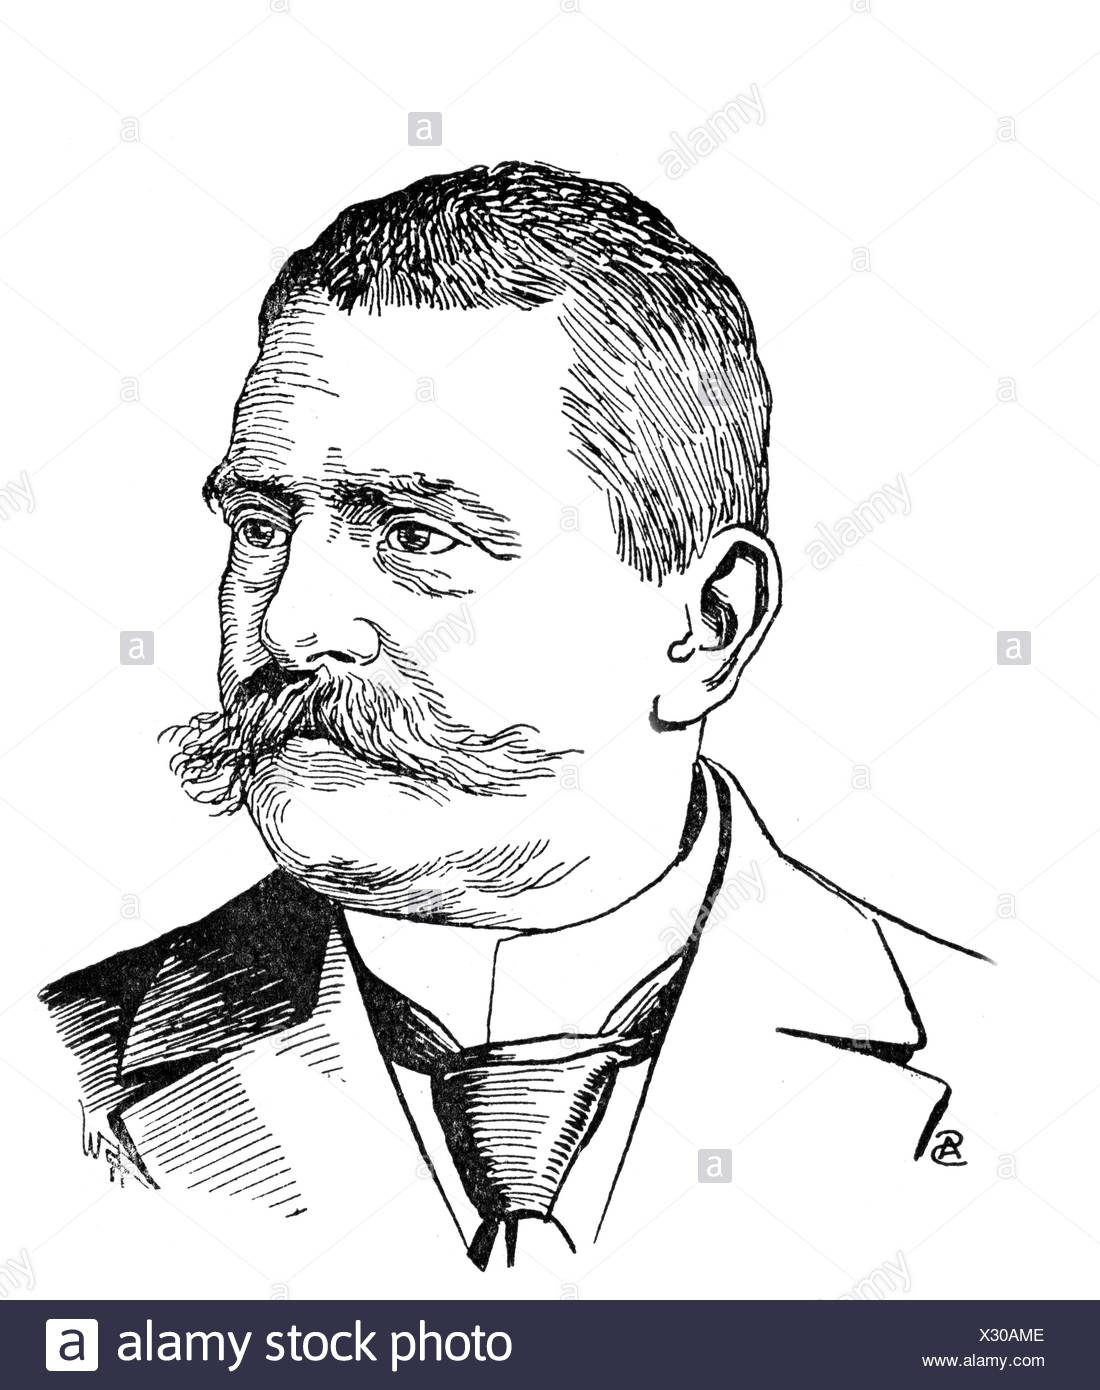 Liliencron, Detlev von, 3.6.1844 - 22.7.1909, German author / writer (lyric poet), , Additional-Rights-Clearances-NA - Stock Image